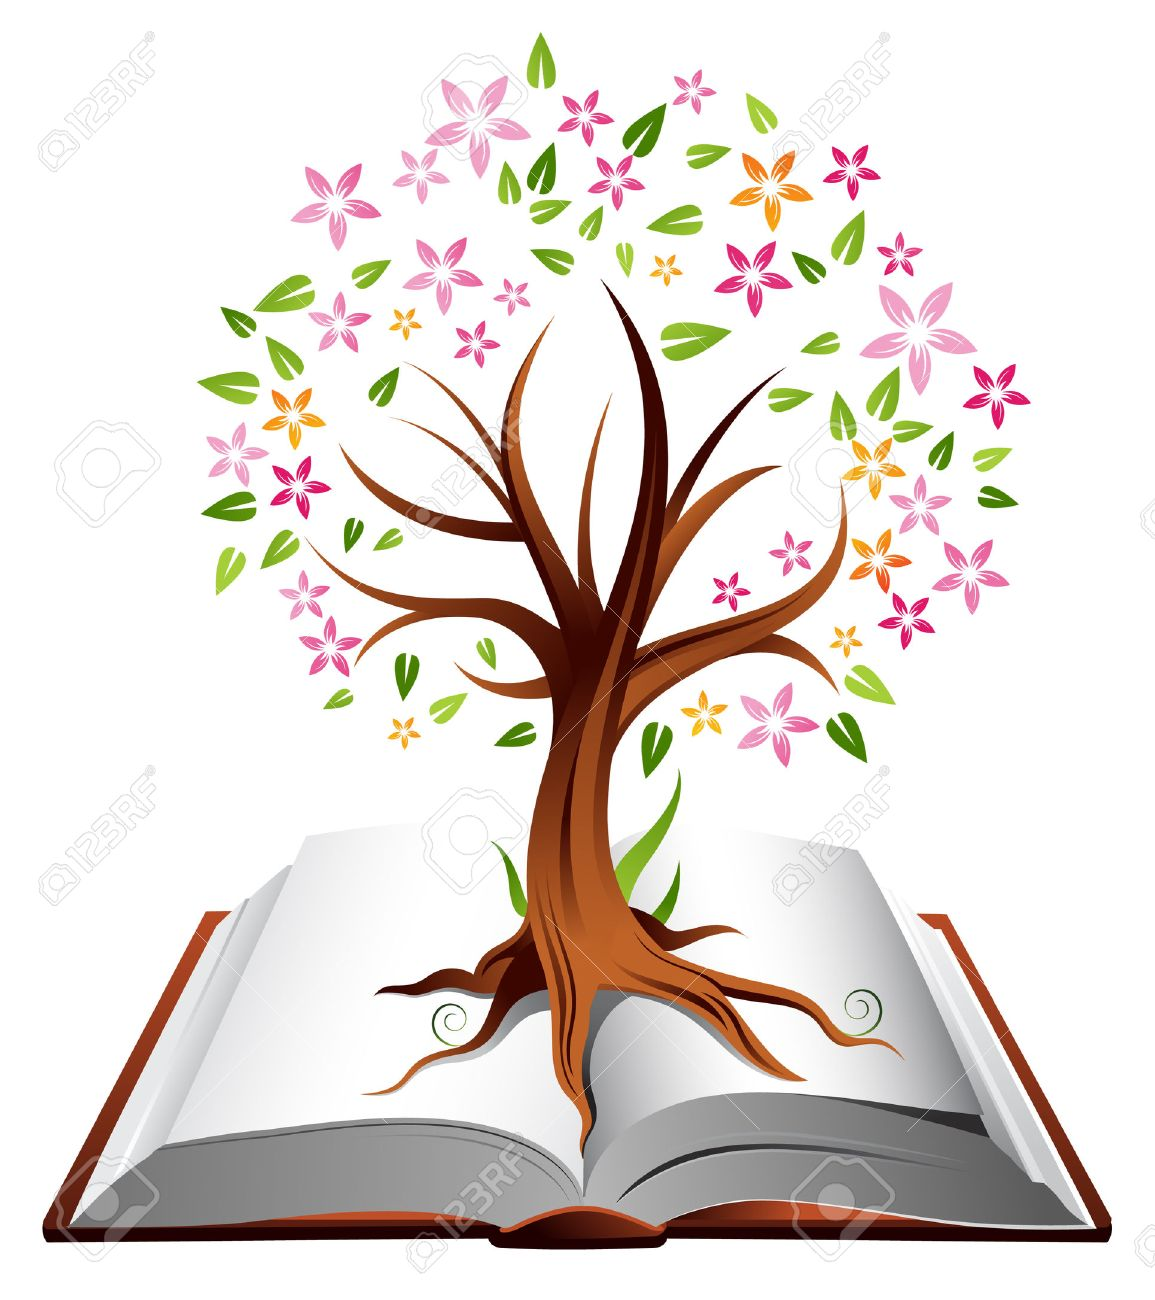 Illustration of a tree with coloured leaves growing out of an open book Stock Vector - 4704893